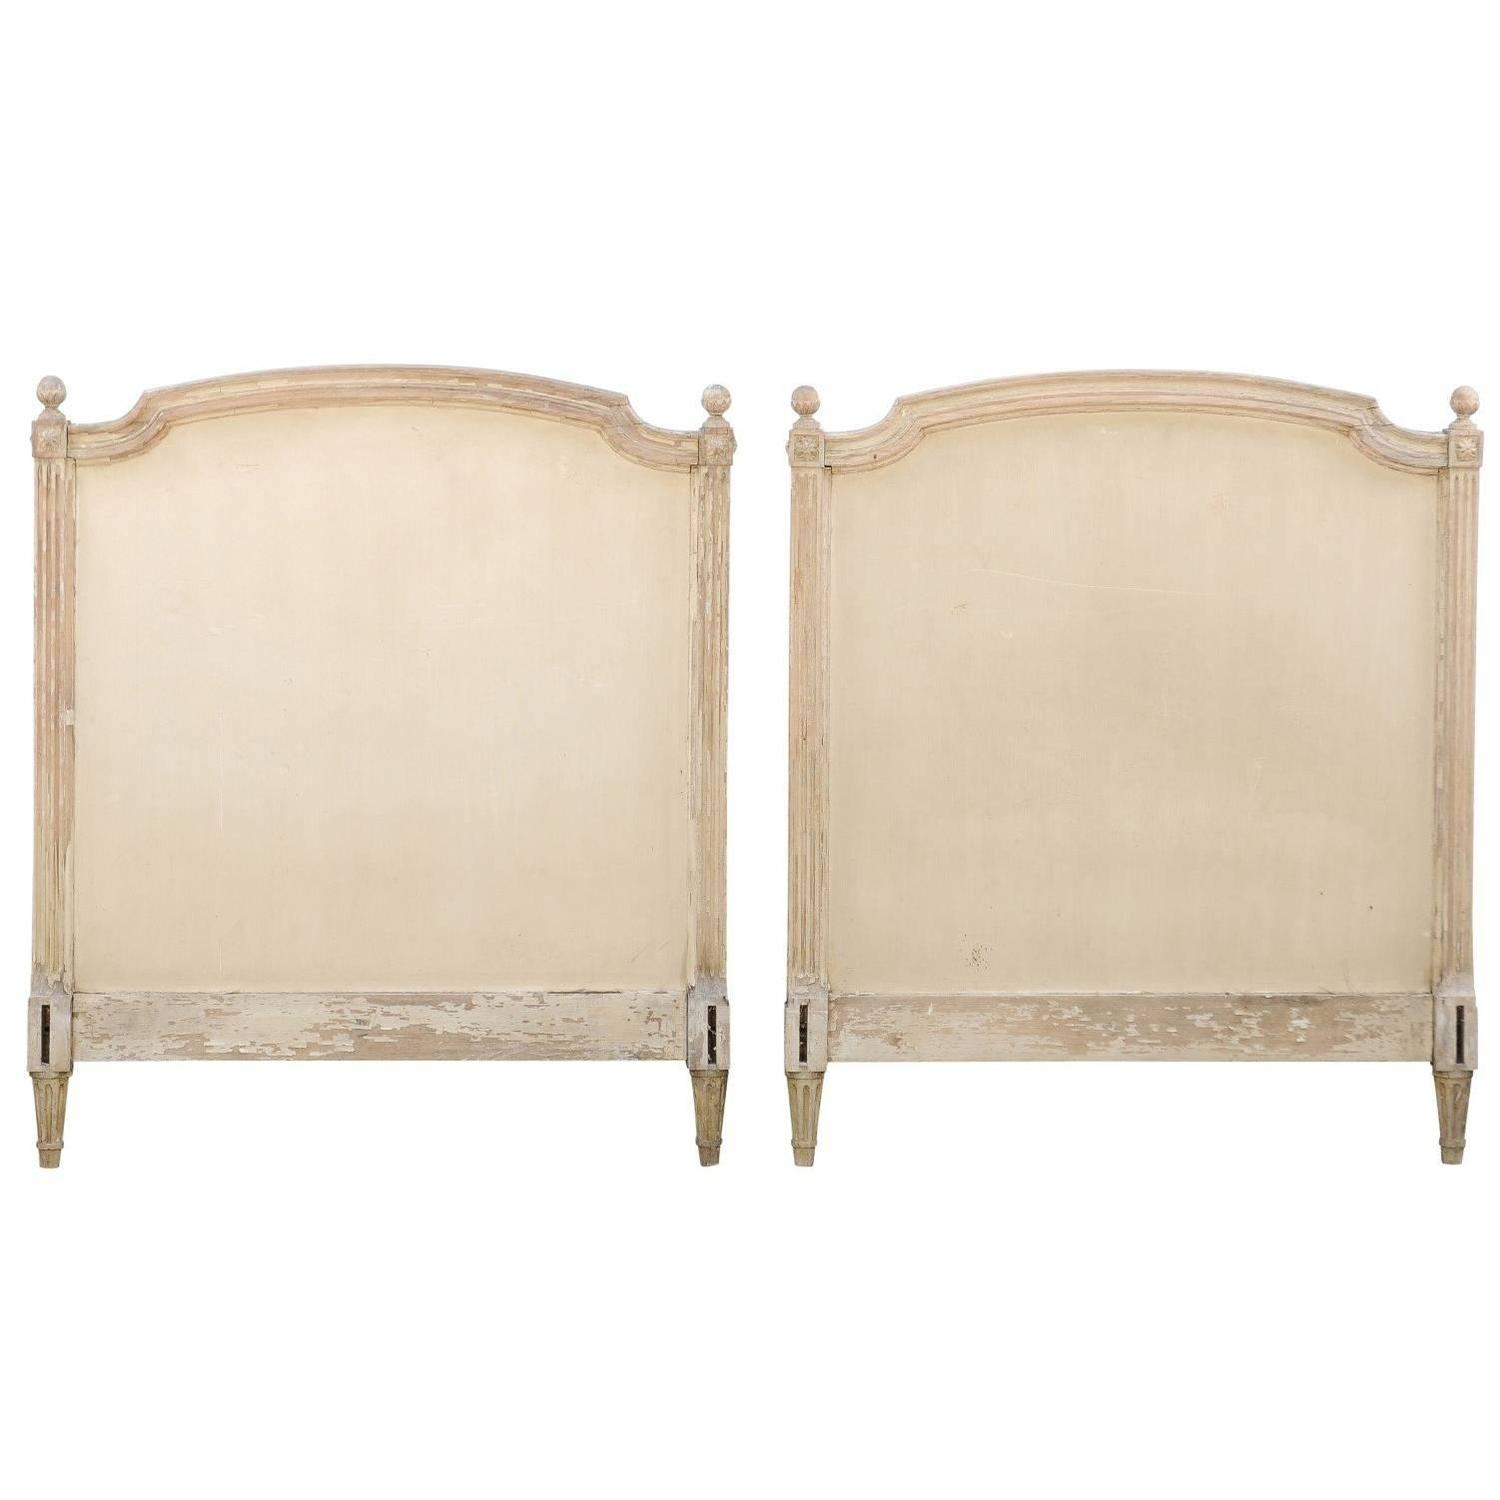 Louis xvi bedroom furniture - Pair Of French Louis Xvi Style Twin Bed Striped Wood Headboards 19th Century